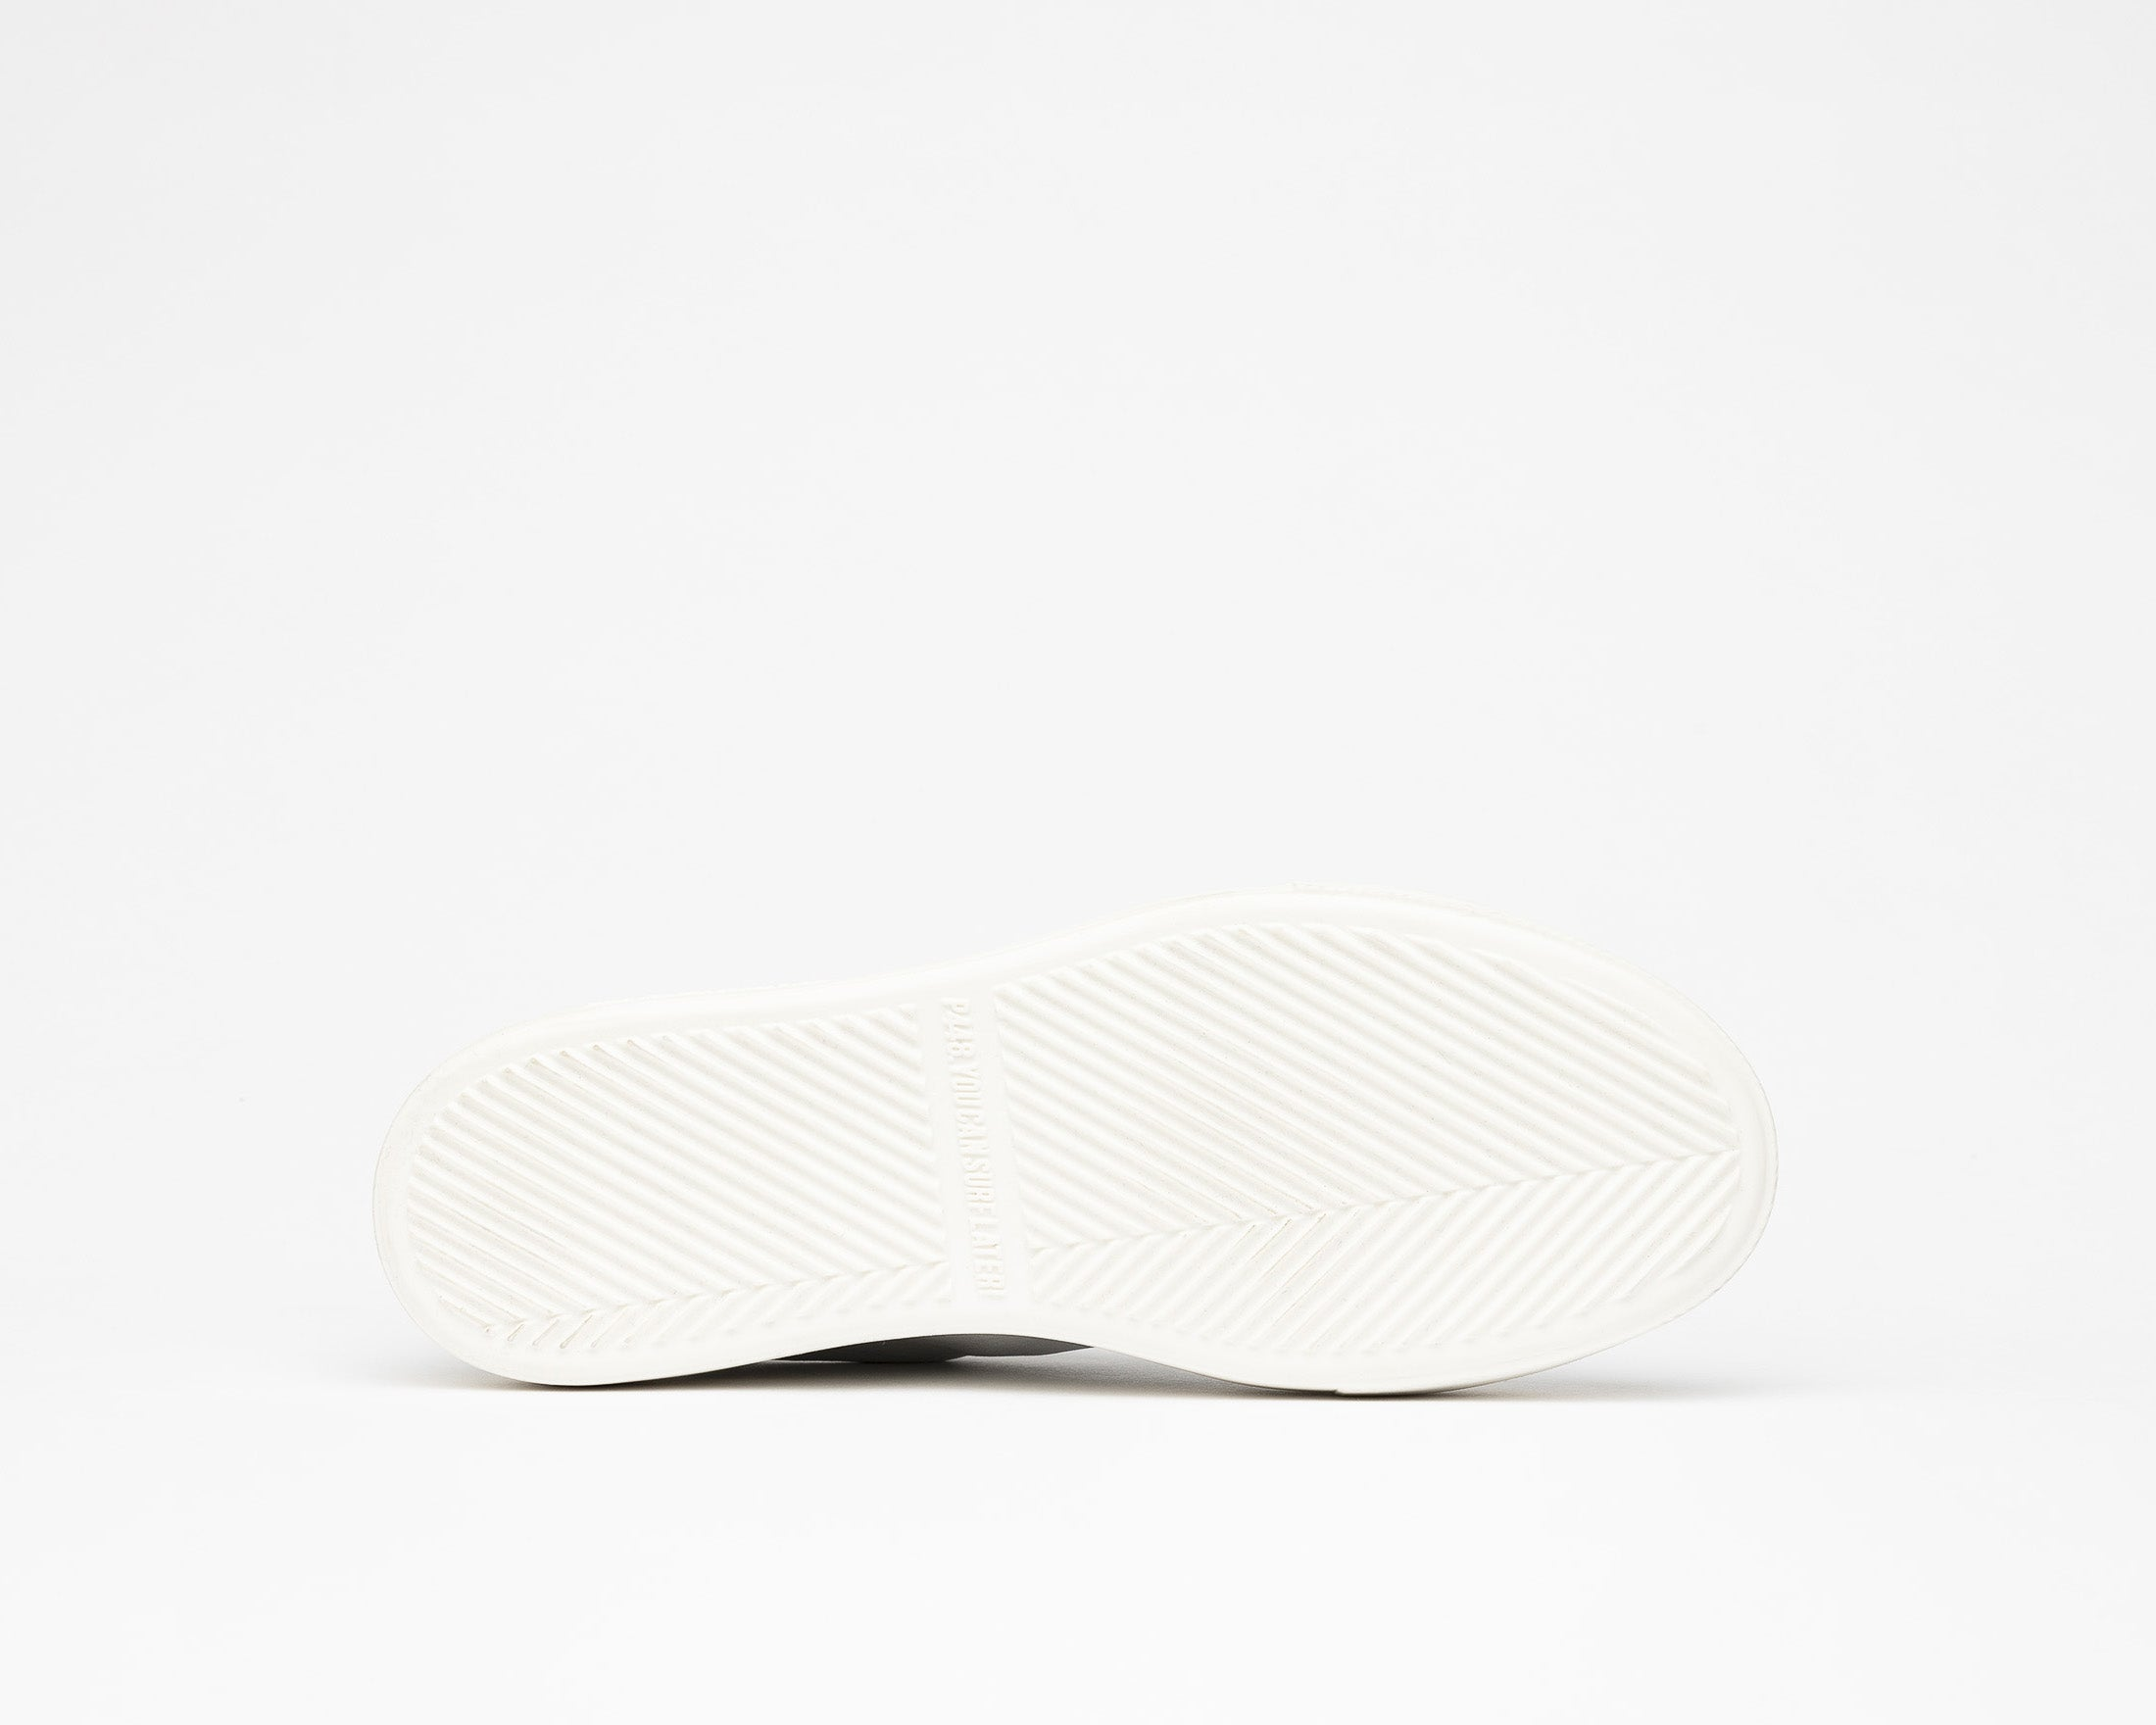 Thea Platform Sneaker in White/Twister Python - Bottom